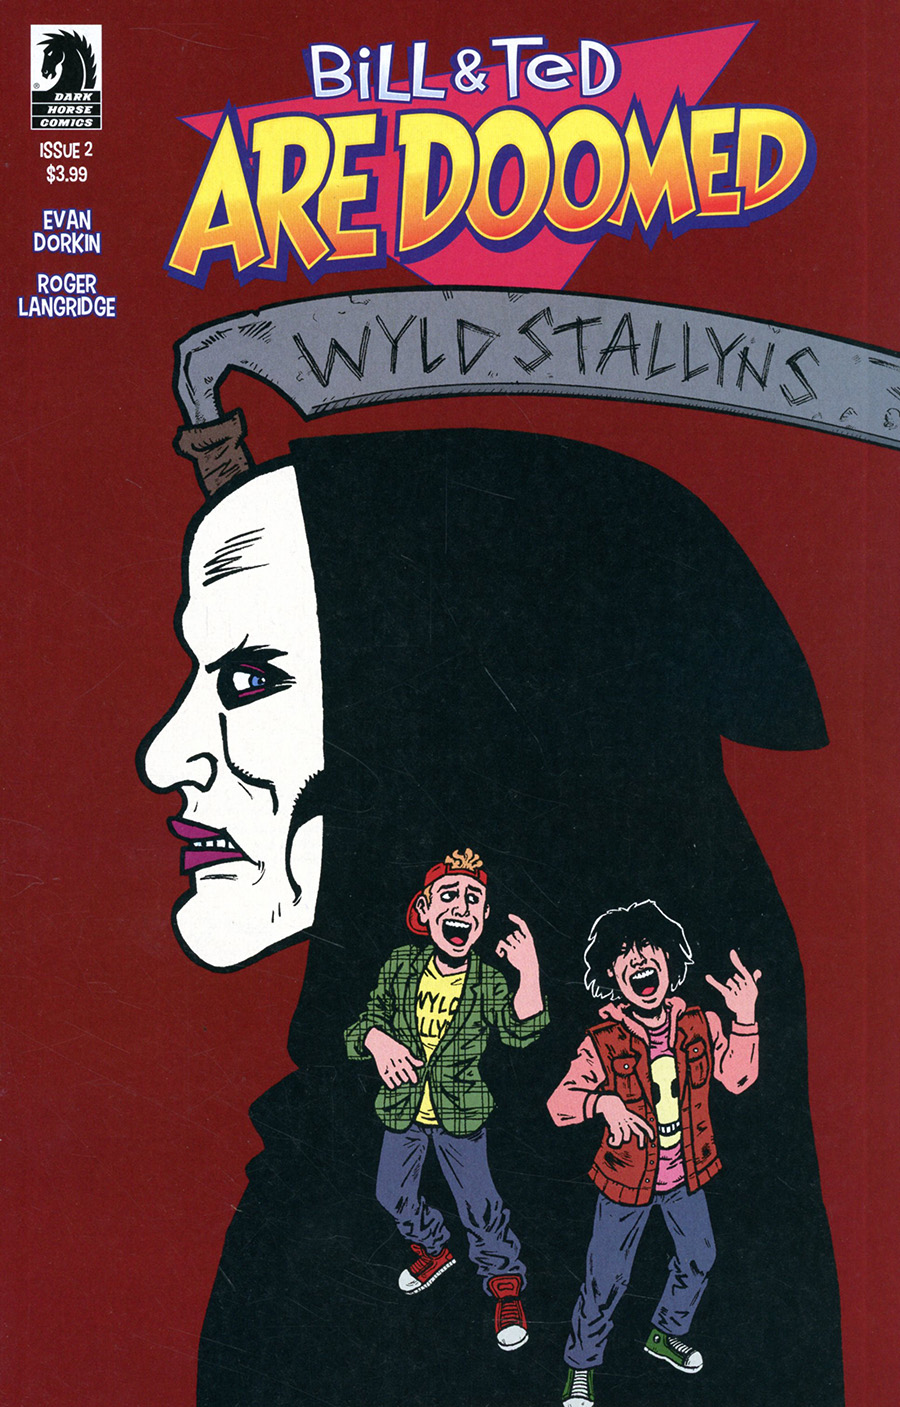 Bill & Ted Are Doomed #2 Cover A Regular Evan Dorkin & Sarah Dyer Cover